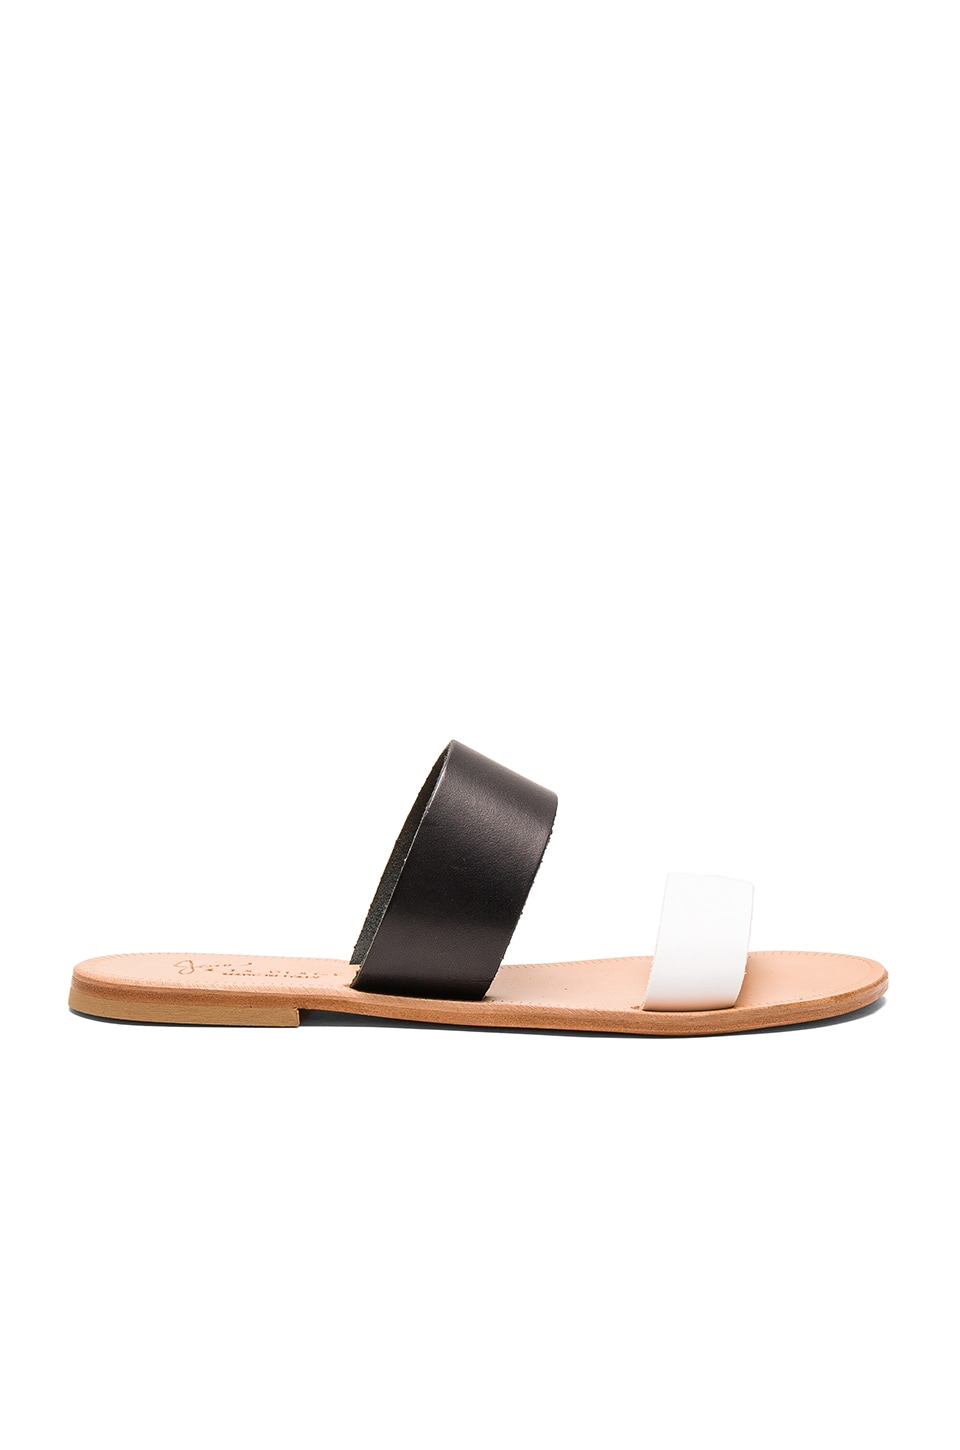 Sable Sandal by Joie